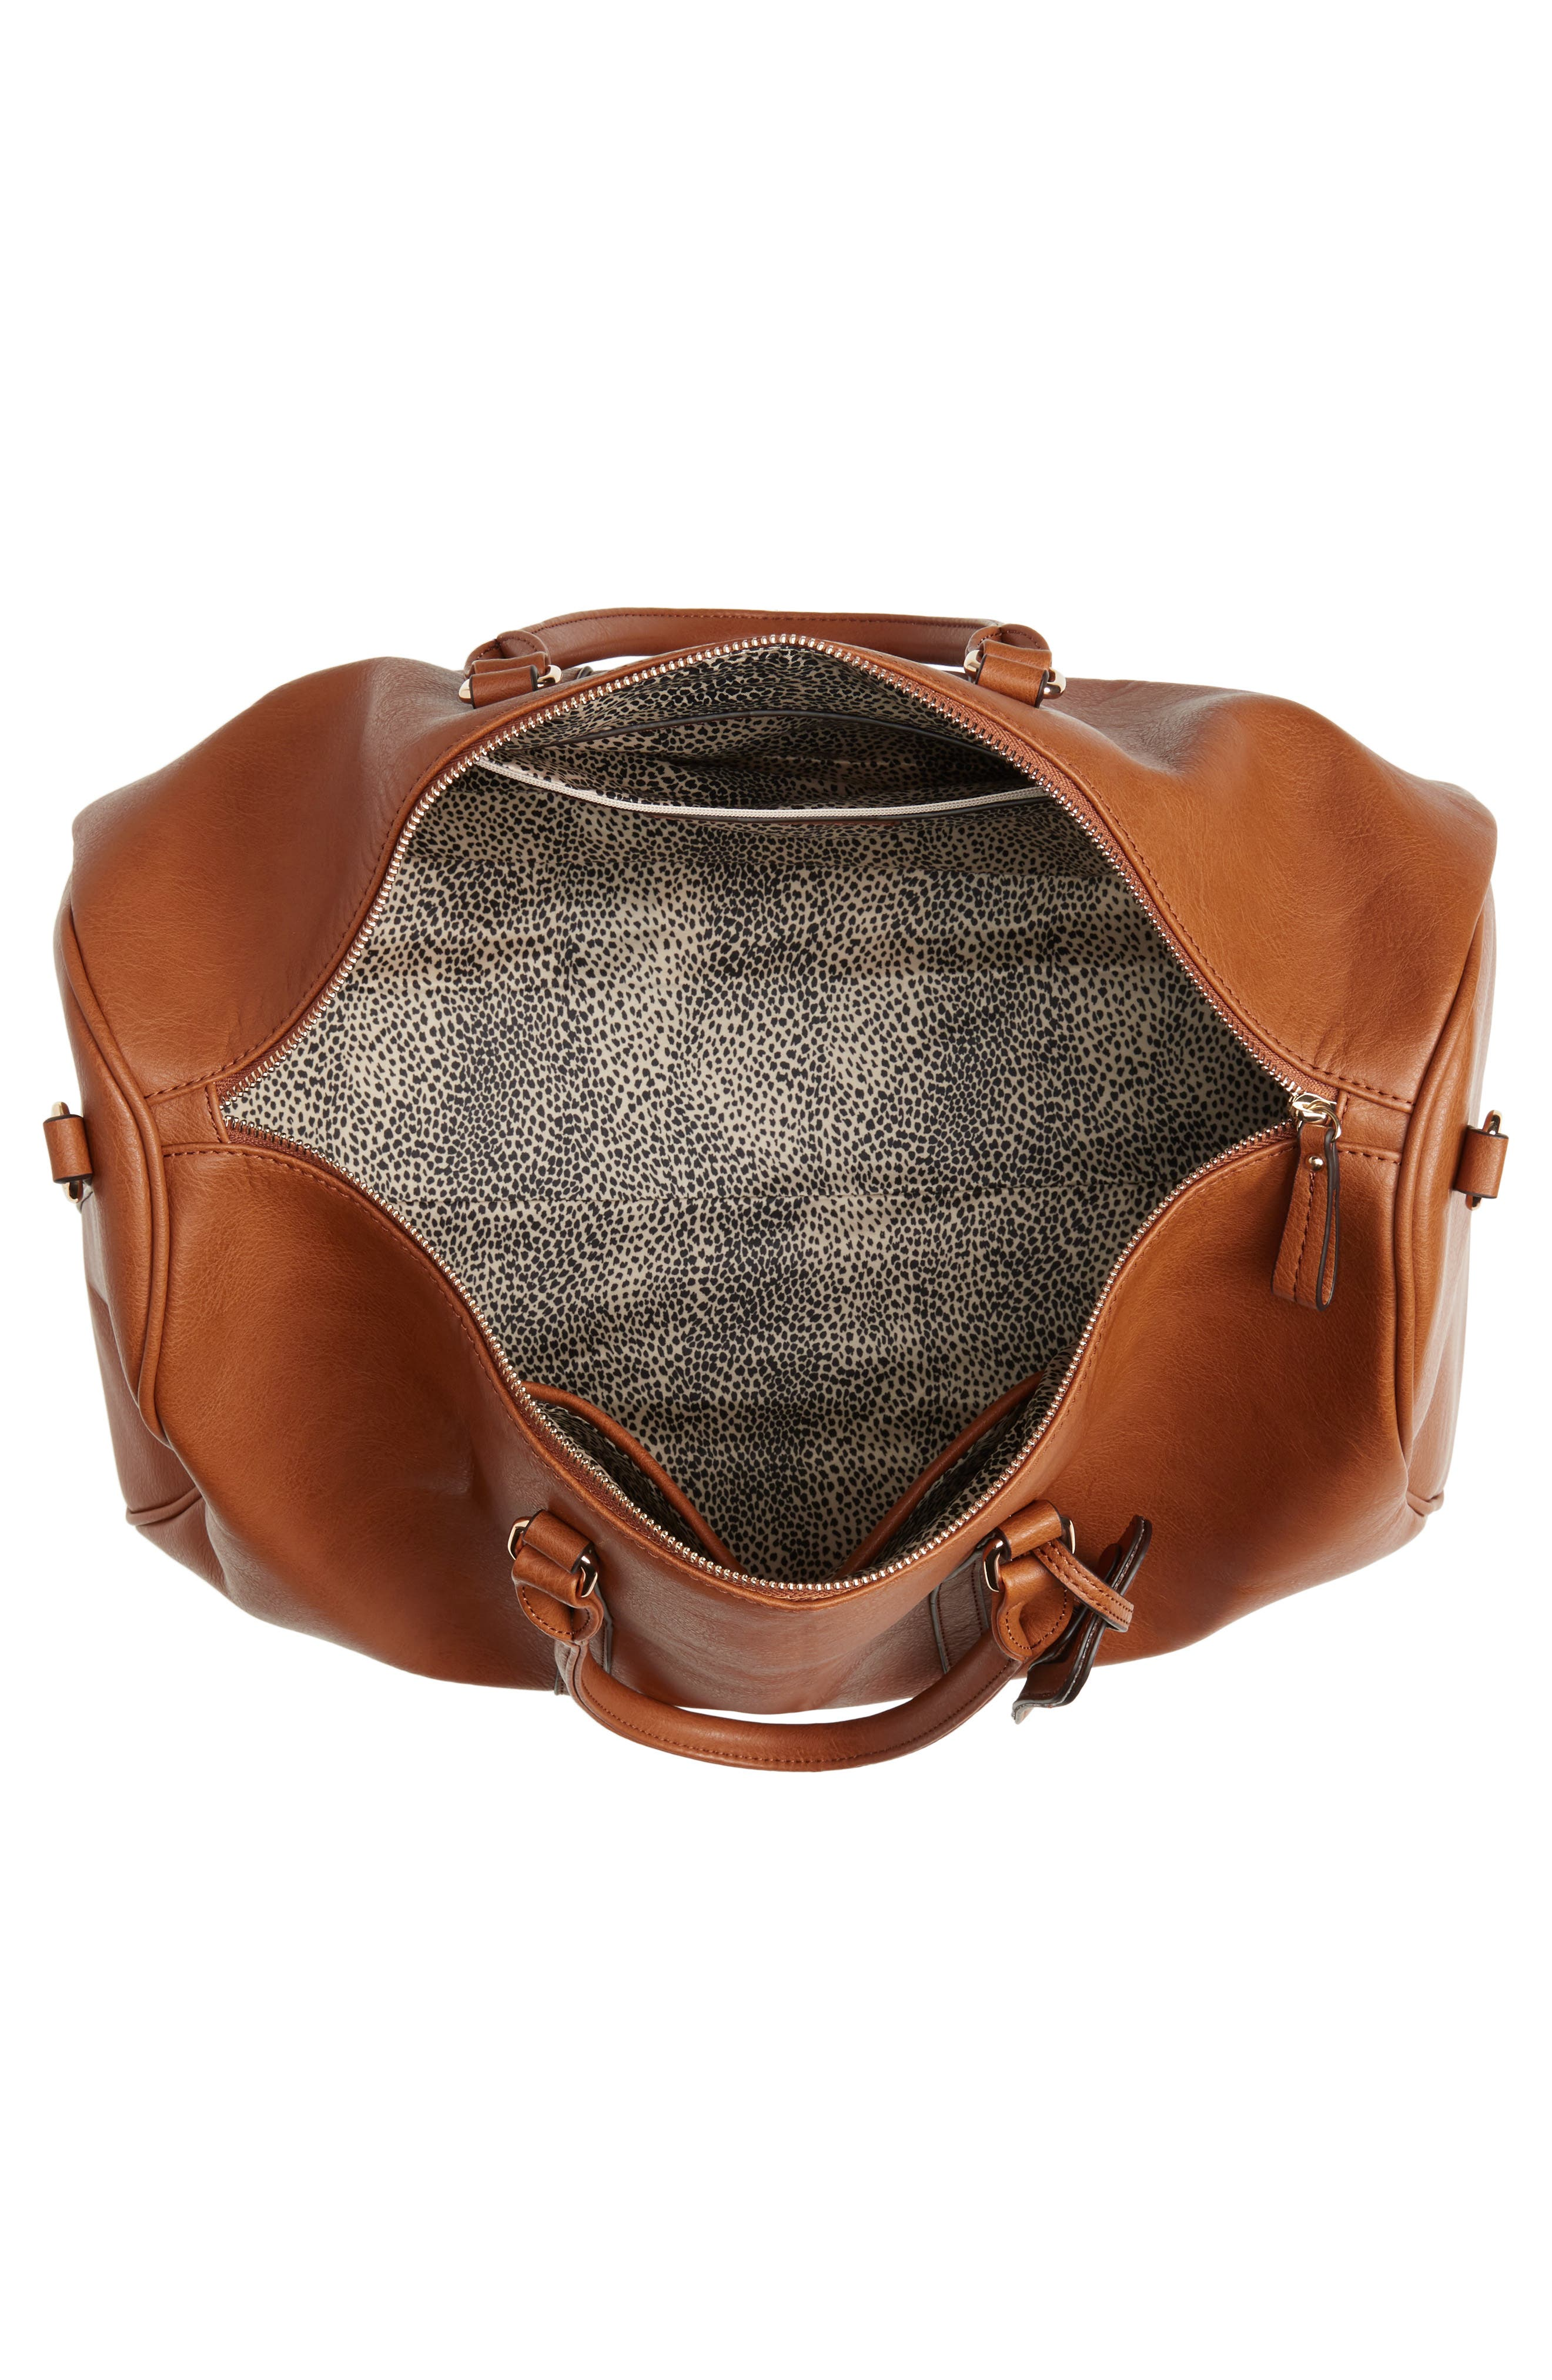 SOLE SOCIETY,                             'Lacie' Faux Leather Duffel Bag,                             Alternate thumbnail 2, color,                             BROWN